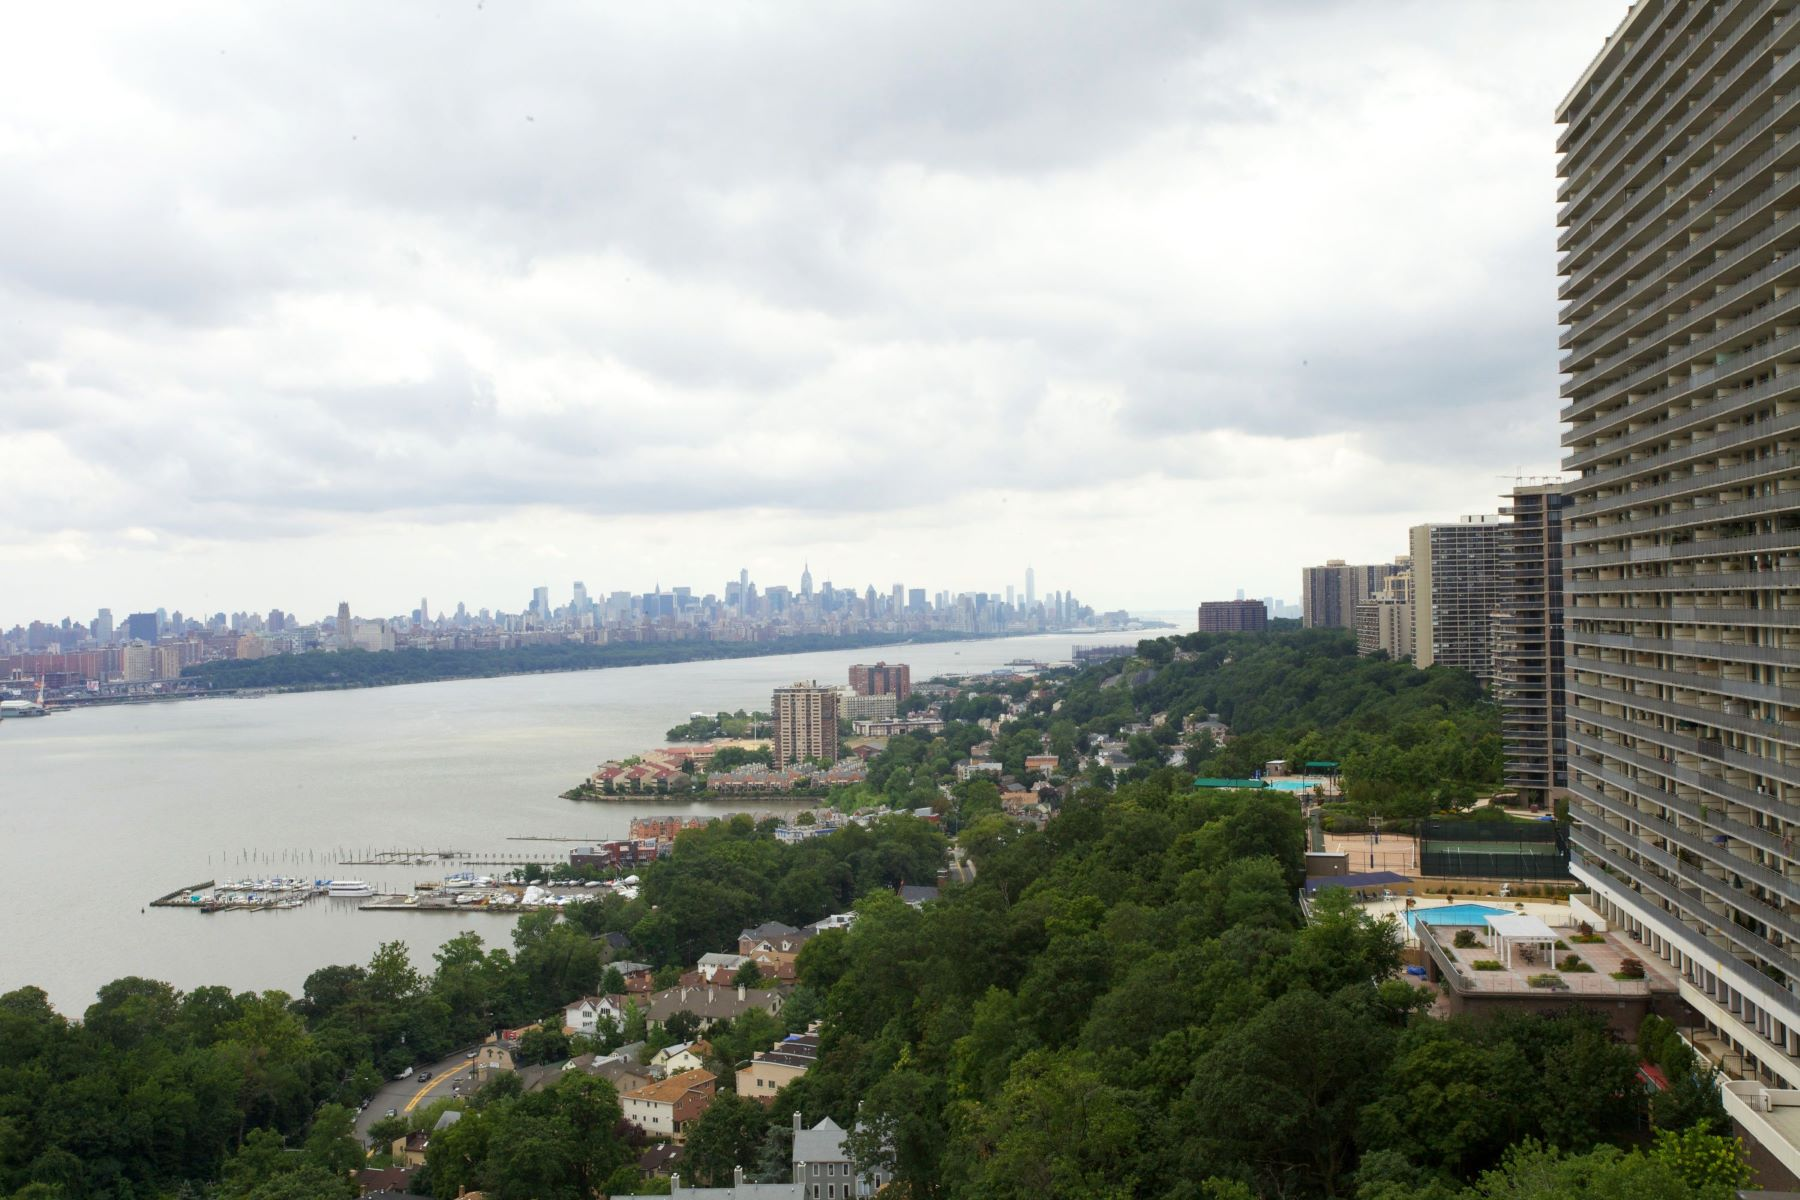 Condominium for Sale at River Ridge Condo for Sale 200 Old Palisade Road 11-12F Fort Lee, New Jersey 07024 United States